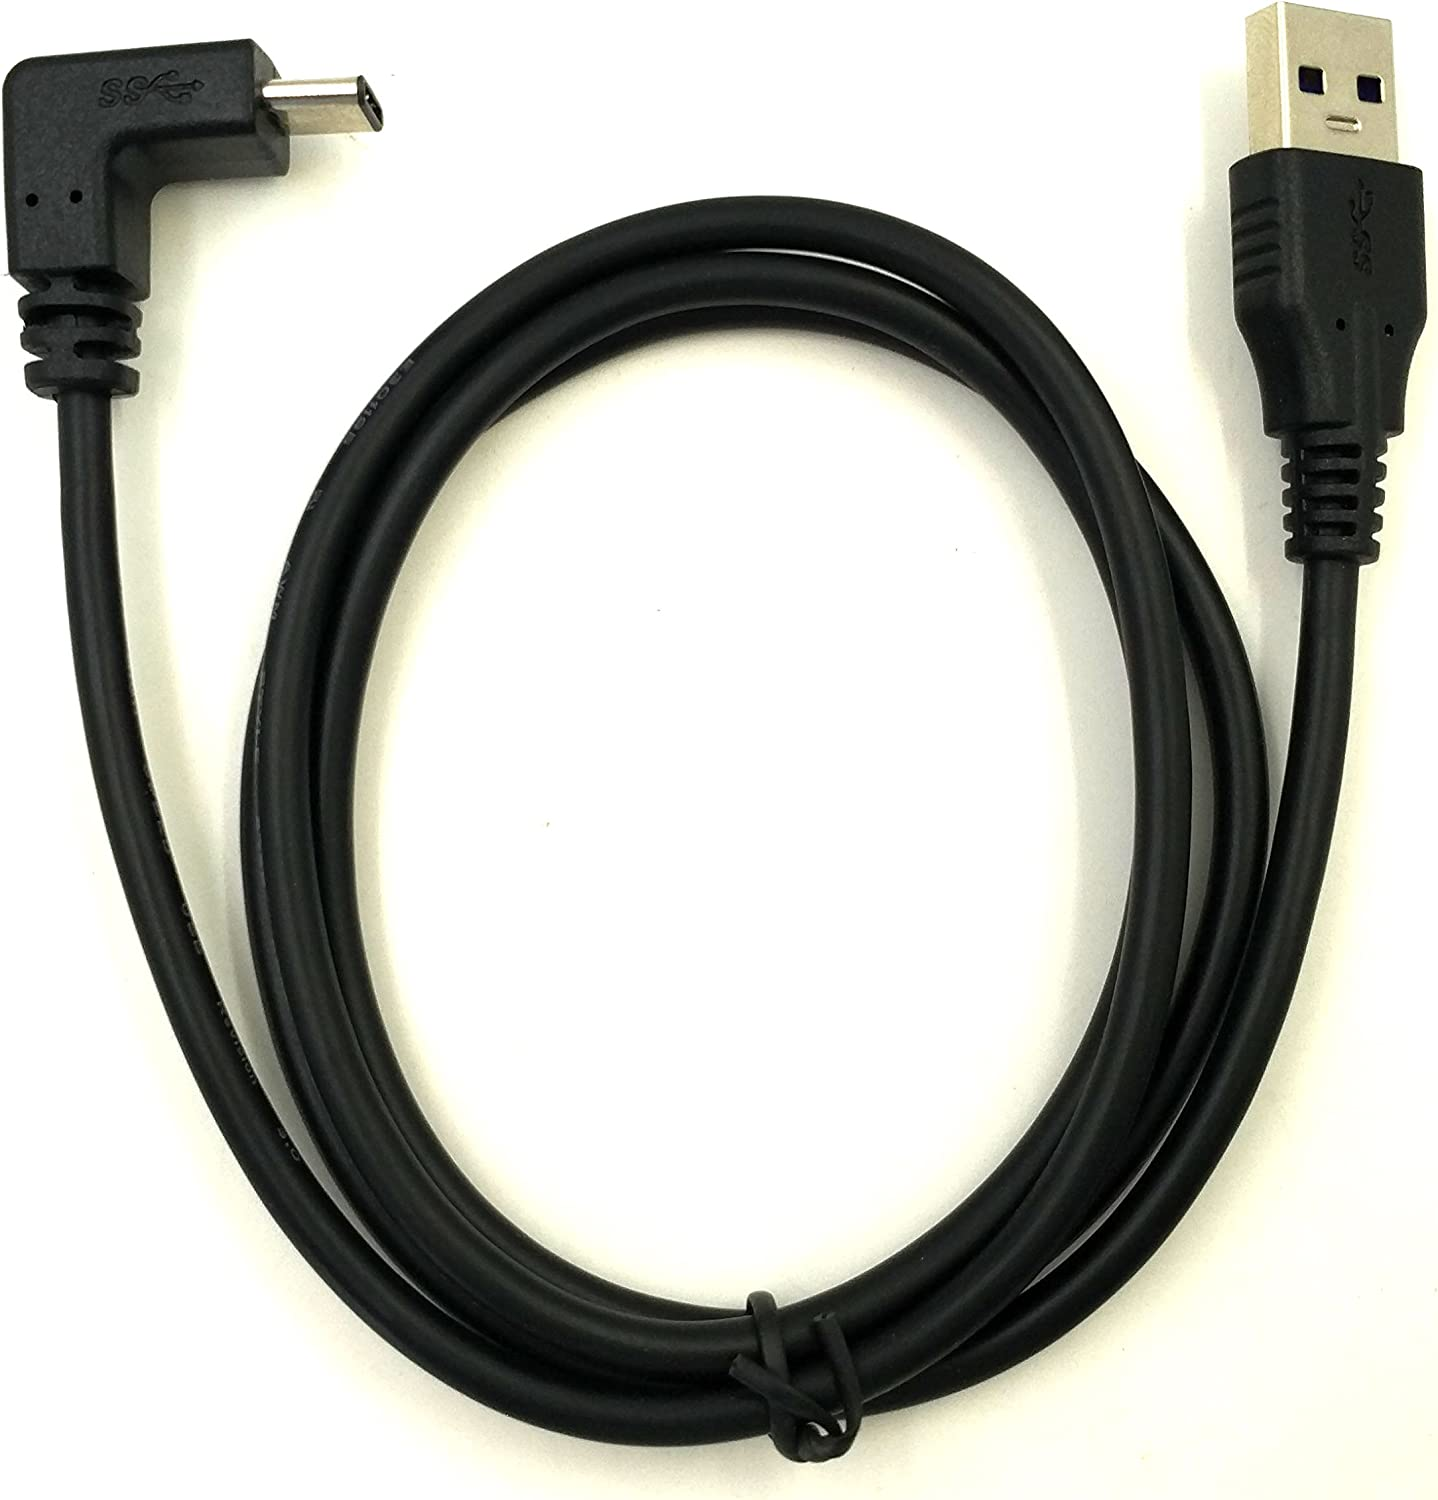 Type A Exuun Type C 90 Degree Cable 1M// 3.3 ft USB 3.0 Male t.. Free Shipping